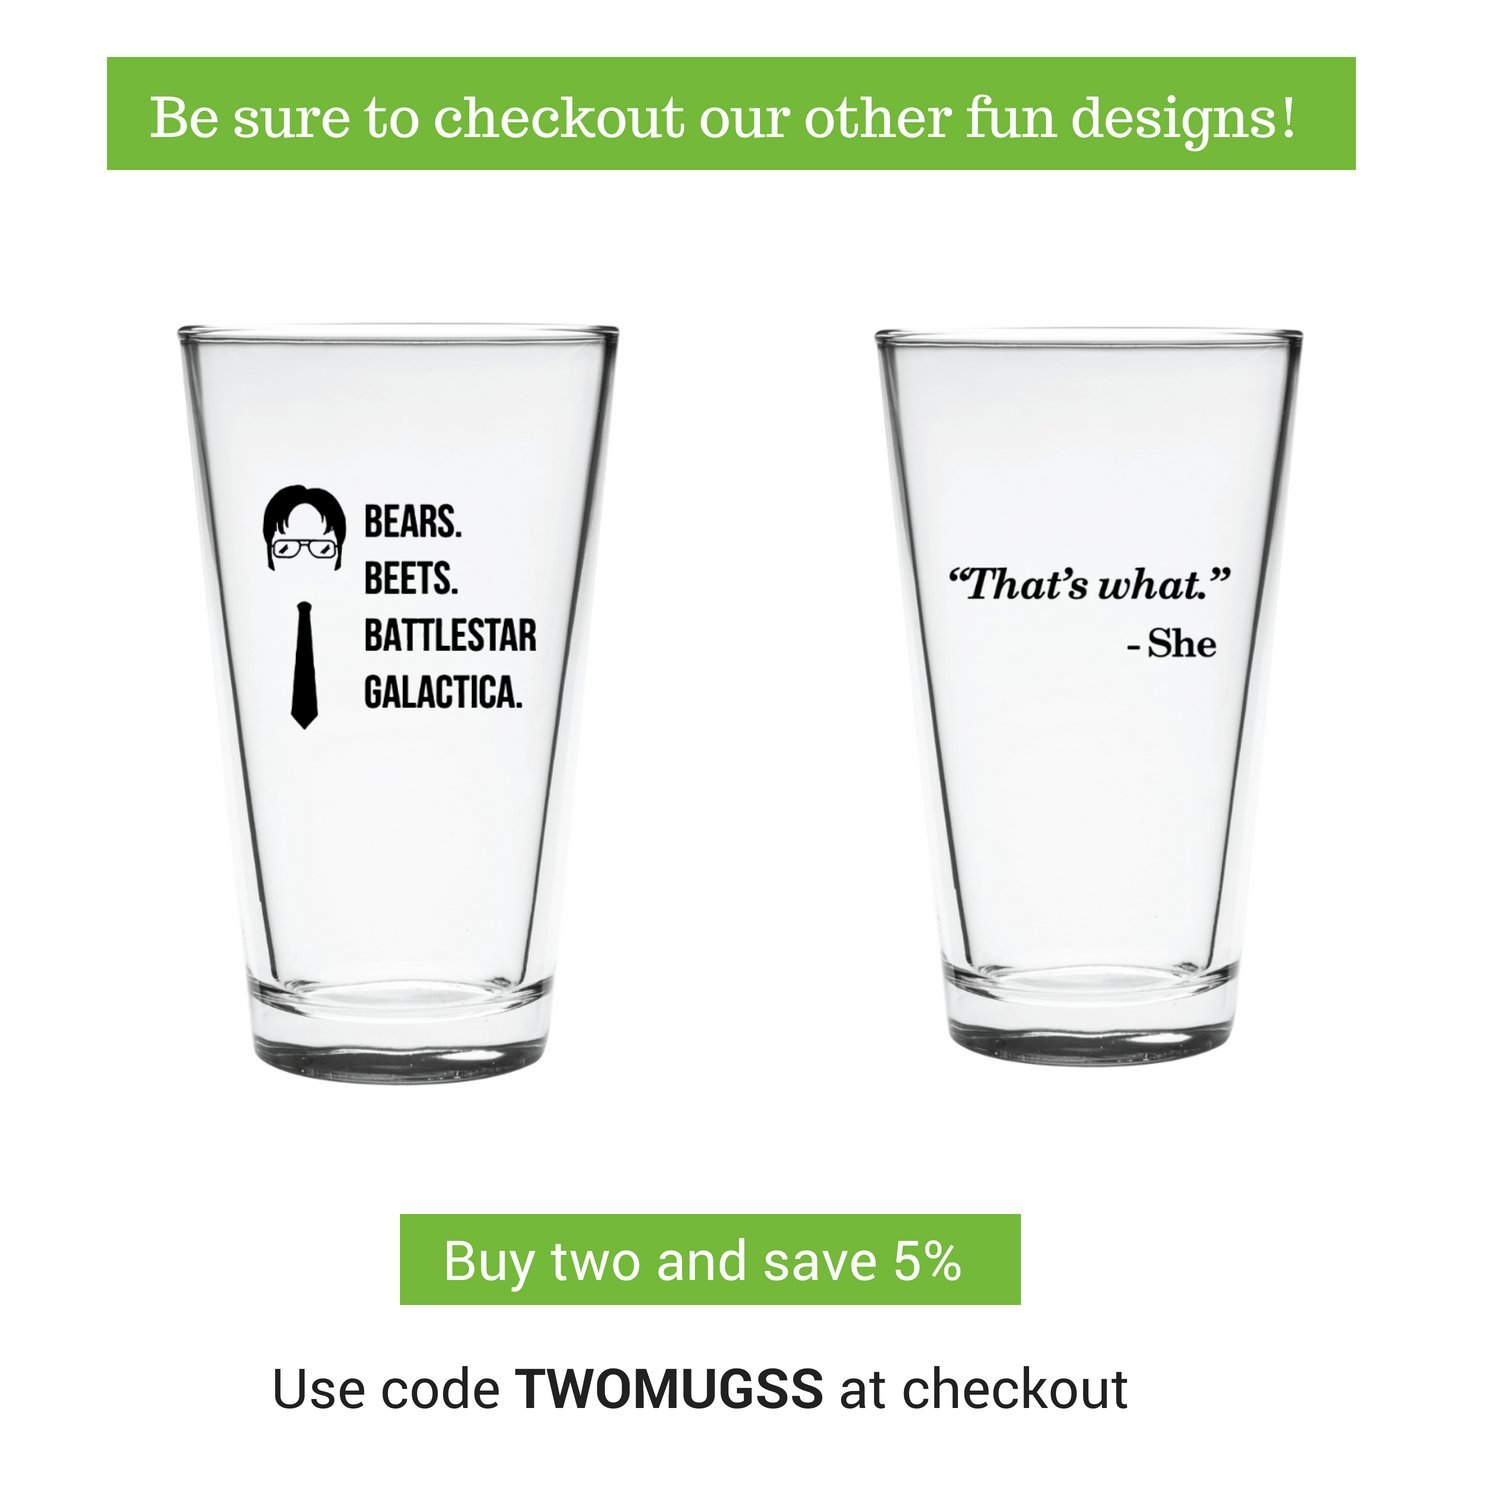 The Office Funny Beer Glass | Merchandise Mug''Bears Beats Battlestar Galactica'' | Dwight Schrute Quote Craft Beer Glasses by Vivid Ventures (Image #3)